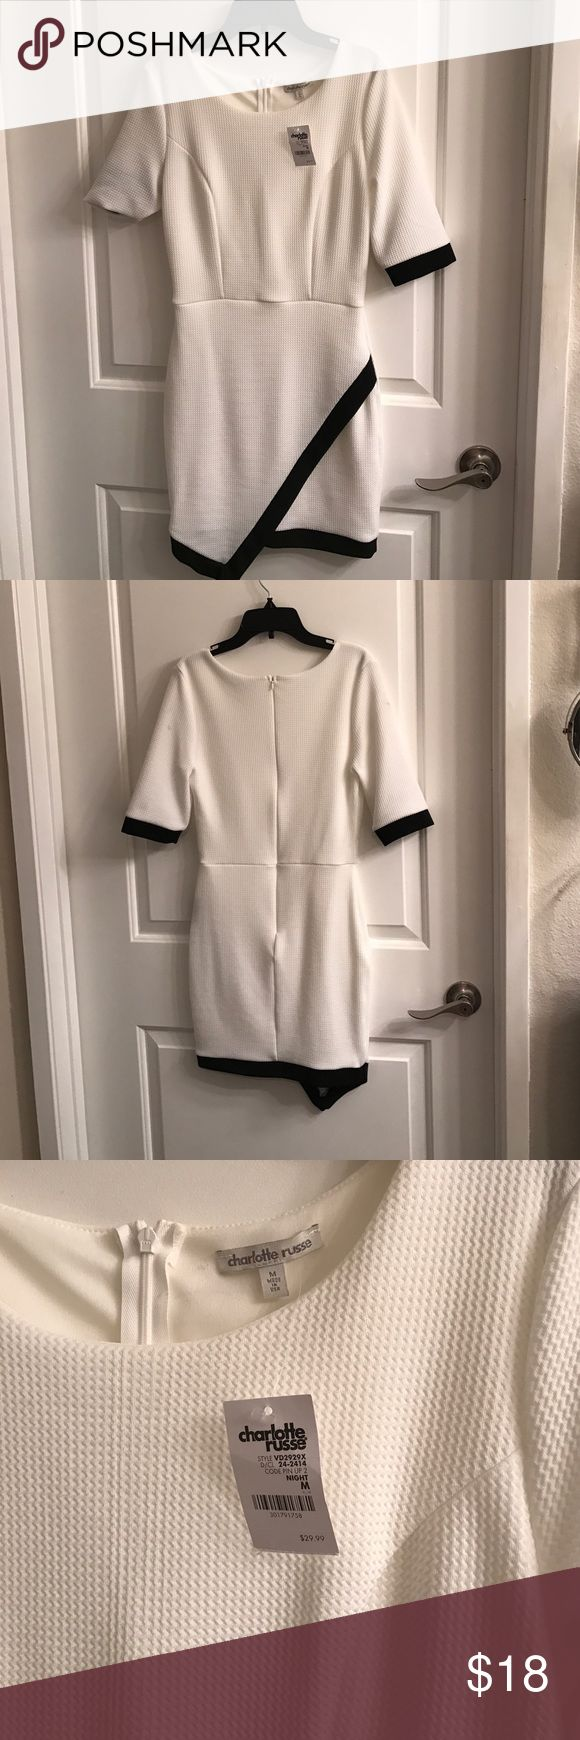 White body con dress White body con dress from Charlotte Rousse. Never got around to wearing it so it still has the tags, original retail $29.99. Has two little stains on each shoulder, try removing with shout wipes? Charlotte Russe Dresses Mini